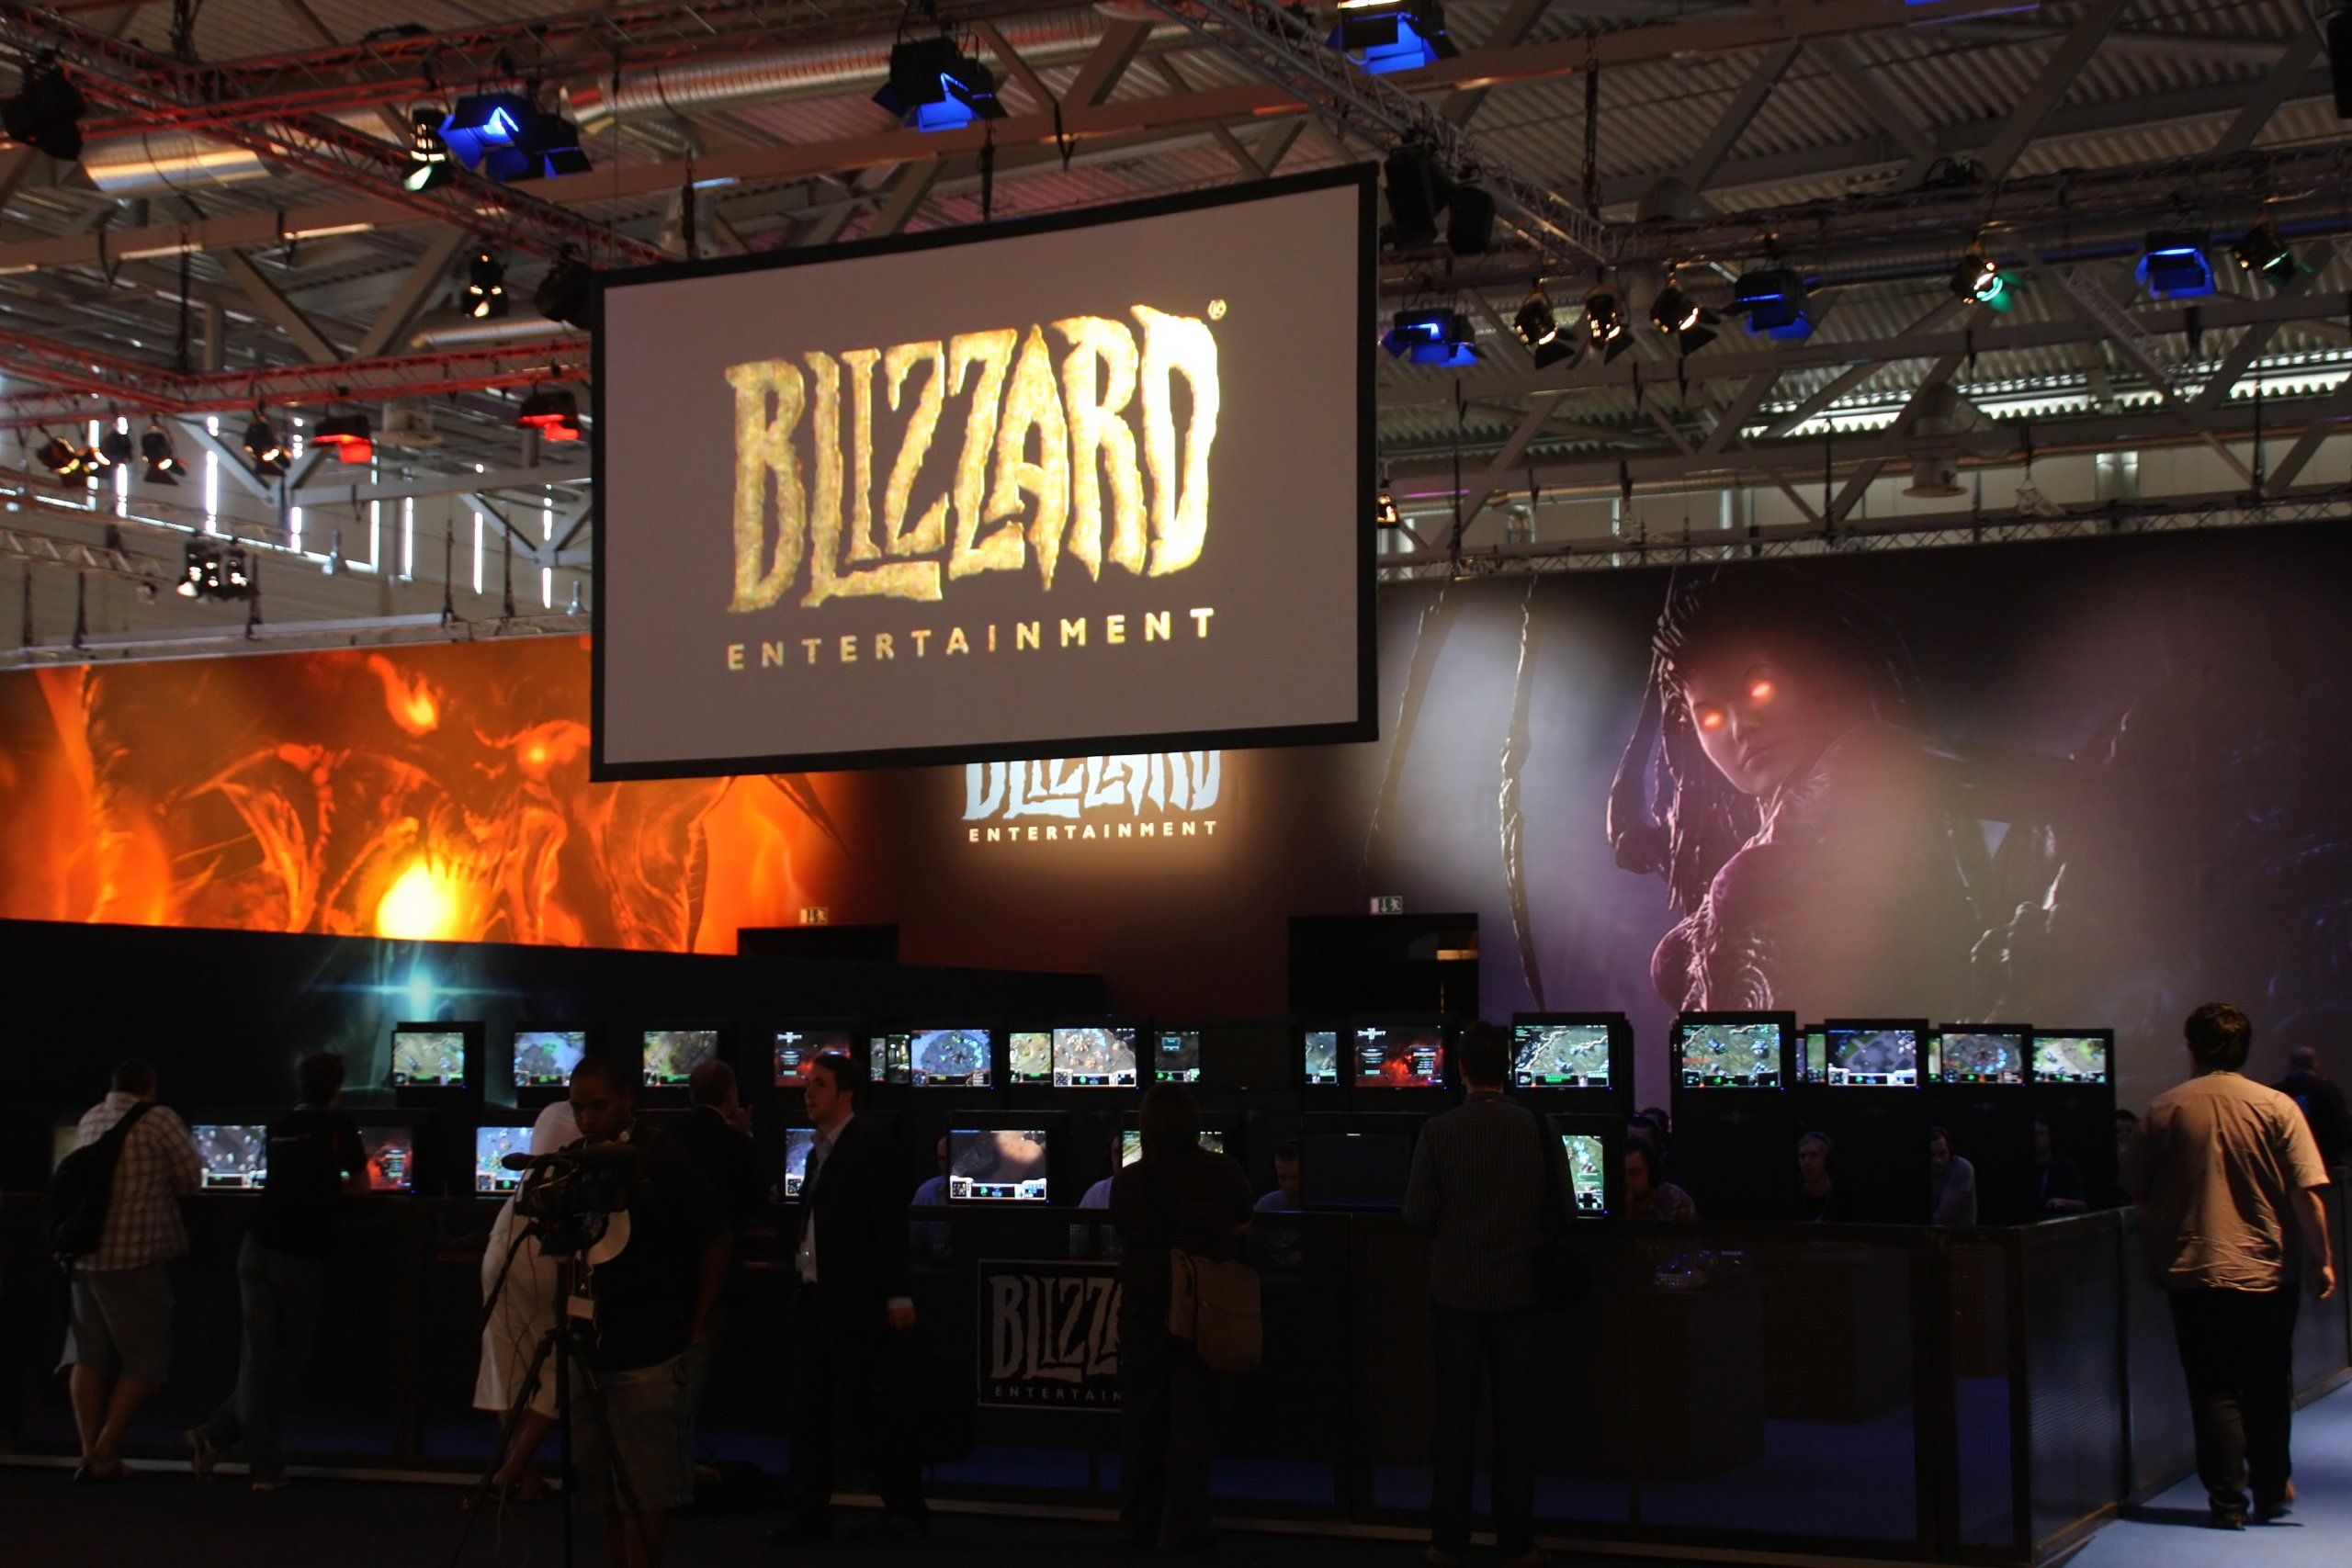 Gamescom 2009 - Blizzard Entertainment